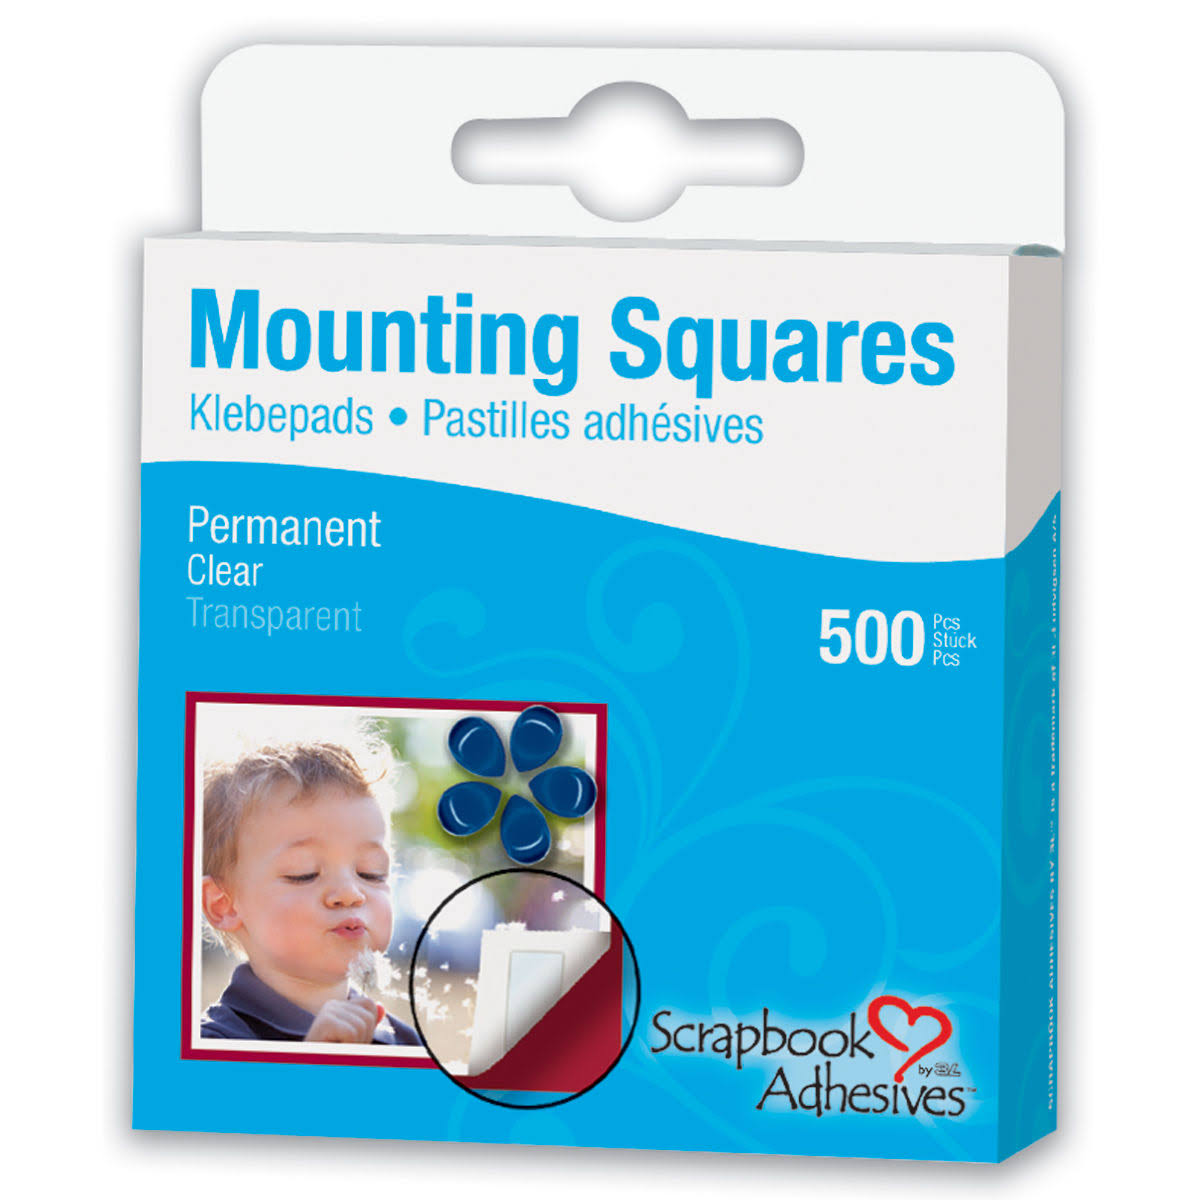 "3L Scrapbook Adhesives Permanent Mounting Squares - Half-Size, 1/2"" x 1/4"", 500pk, Clear"